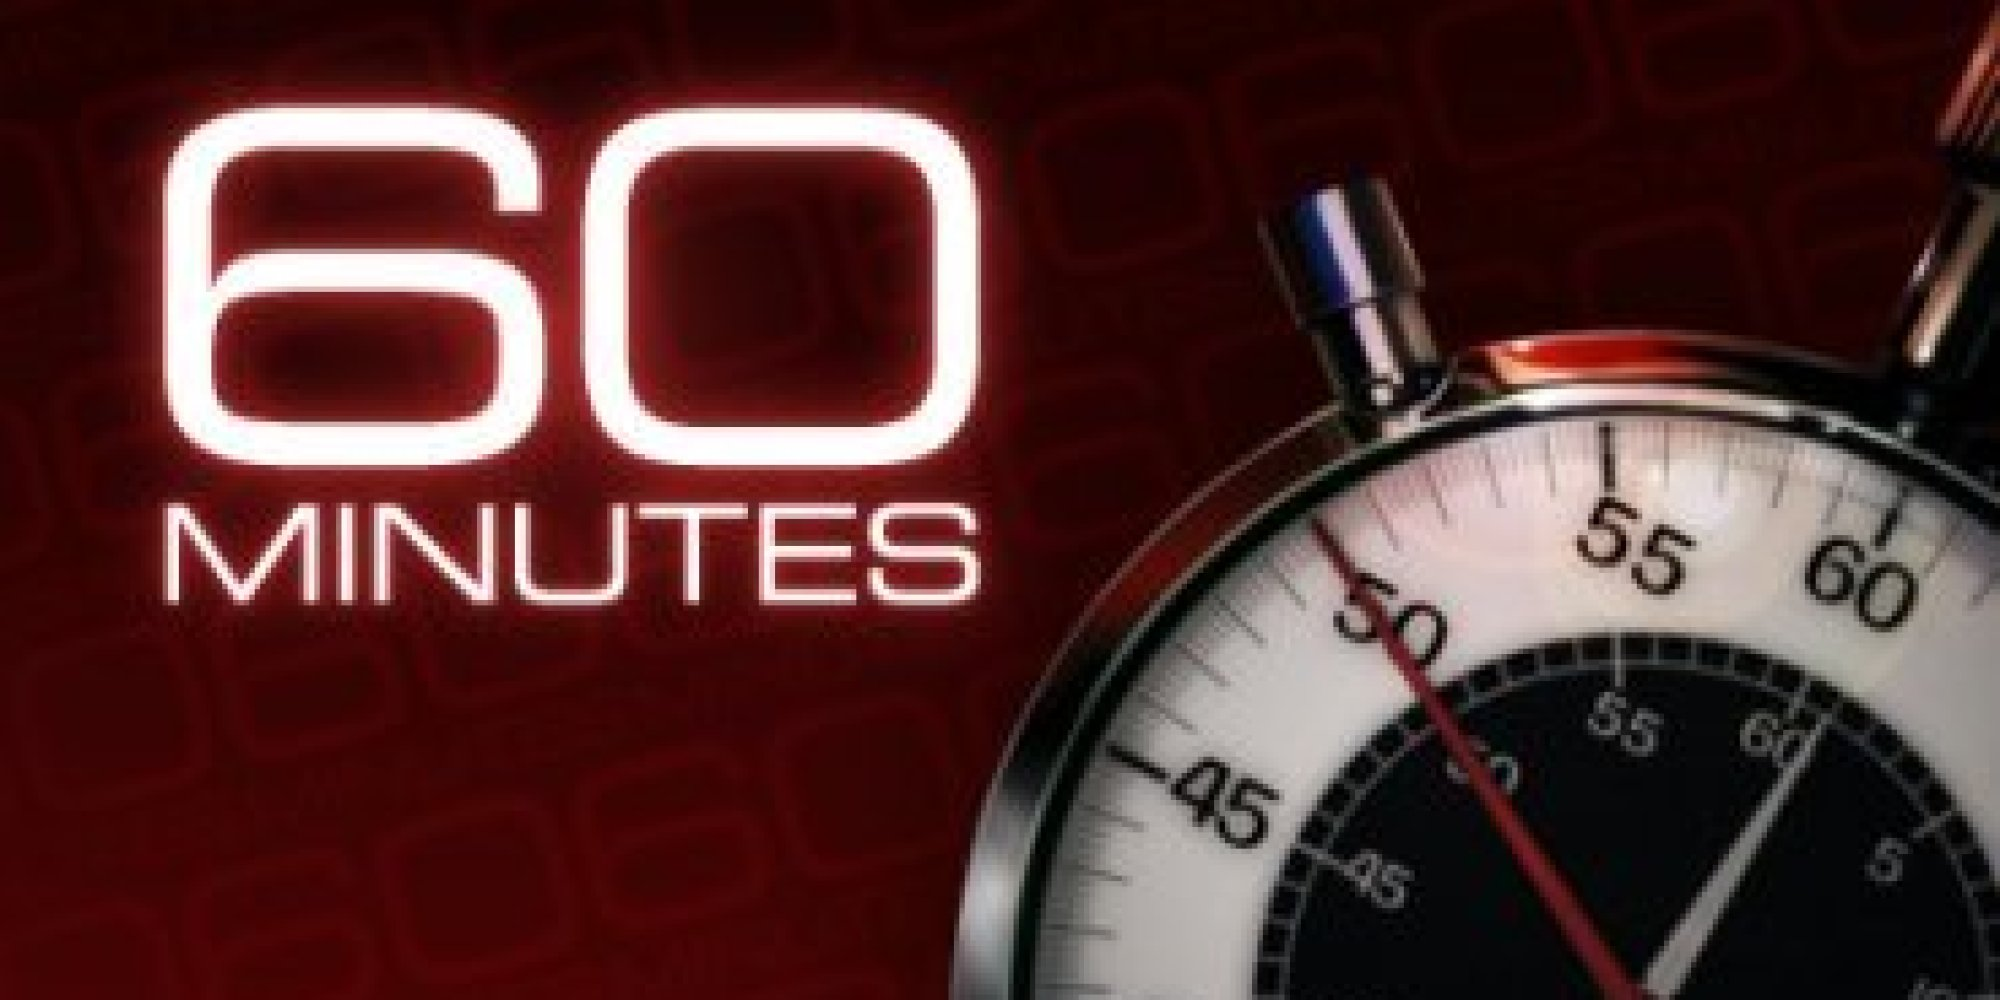 Watch full episodes and exclusive reports for 60 Minutes on 9Now 60 Minutes is Australias leading current affairs programme with a proven record of excellence over